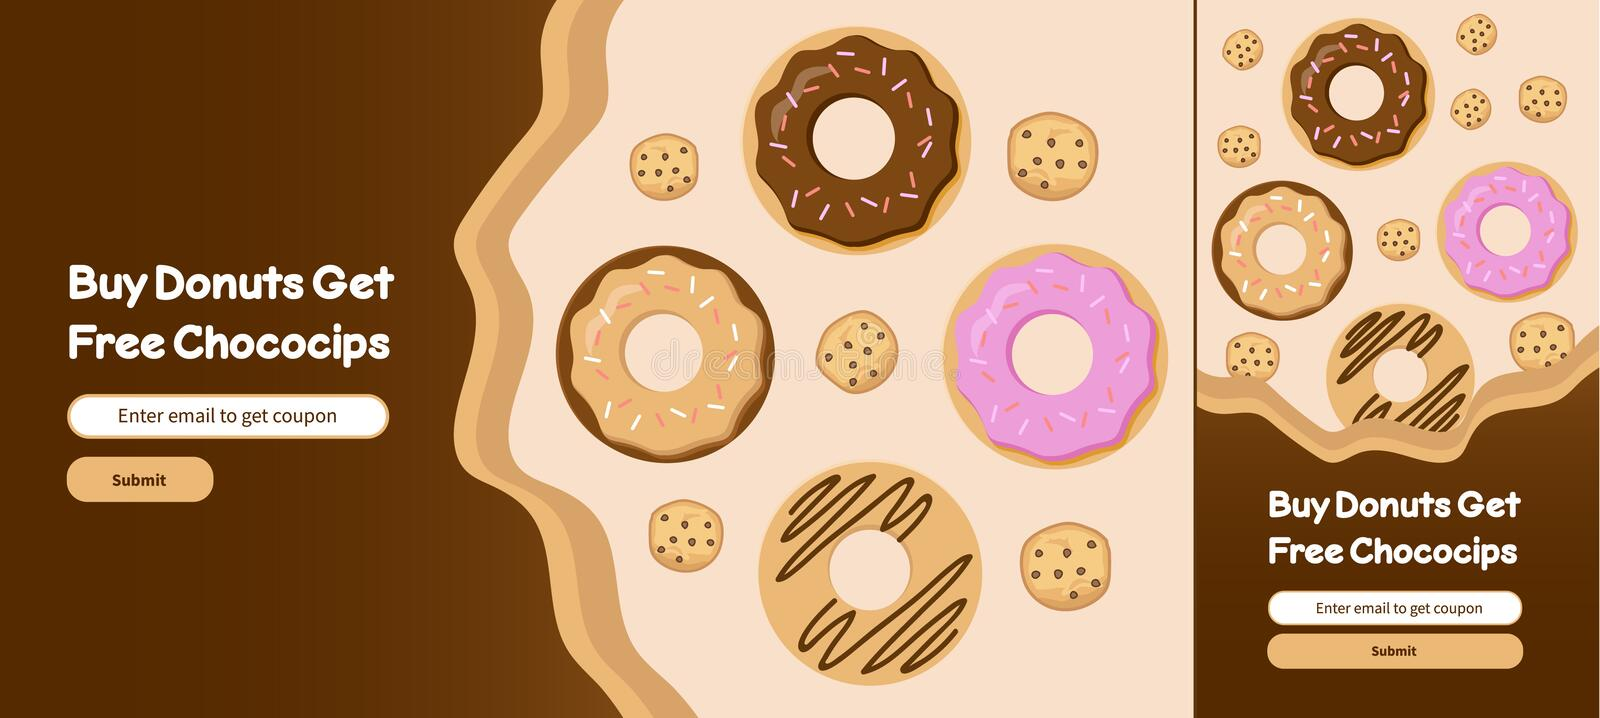 Donuts and Choco chips web banner template design stock illustration